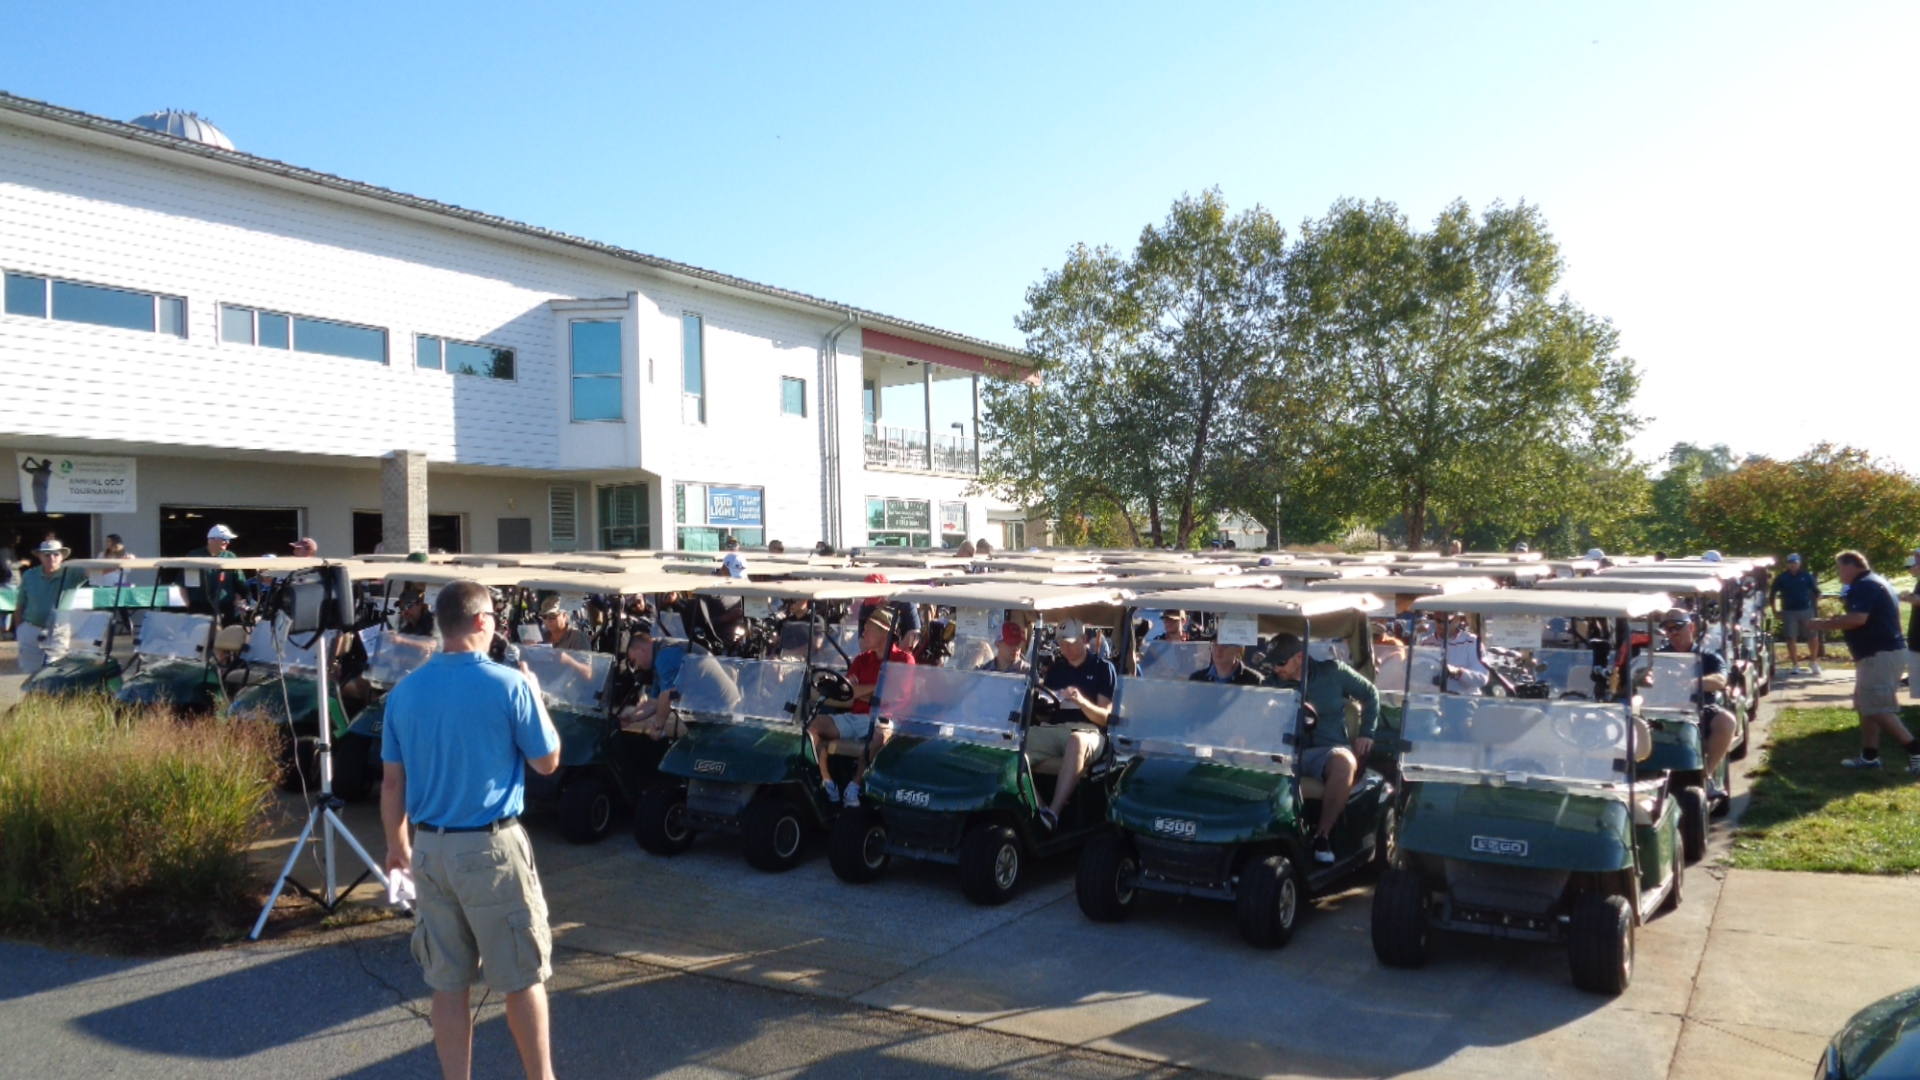 2019 Golf Tournament Welcome with golfers in carts